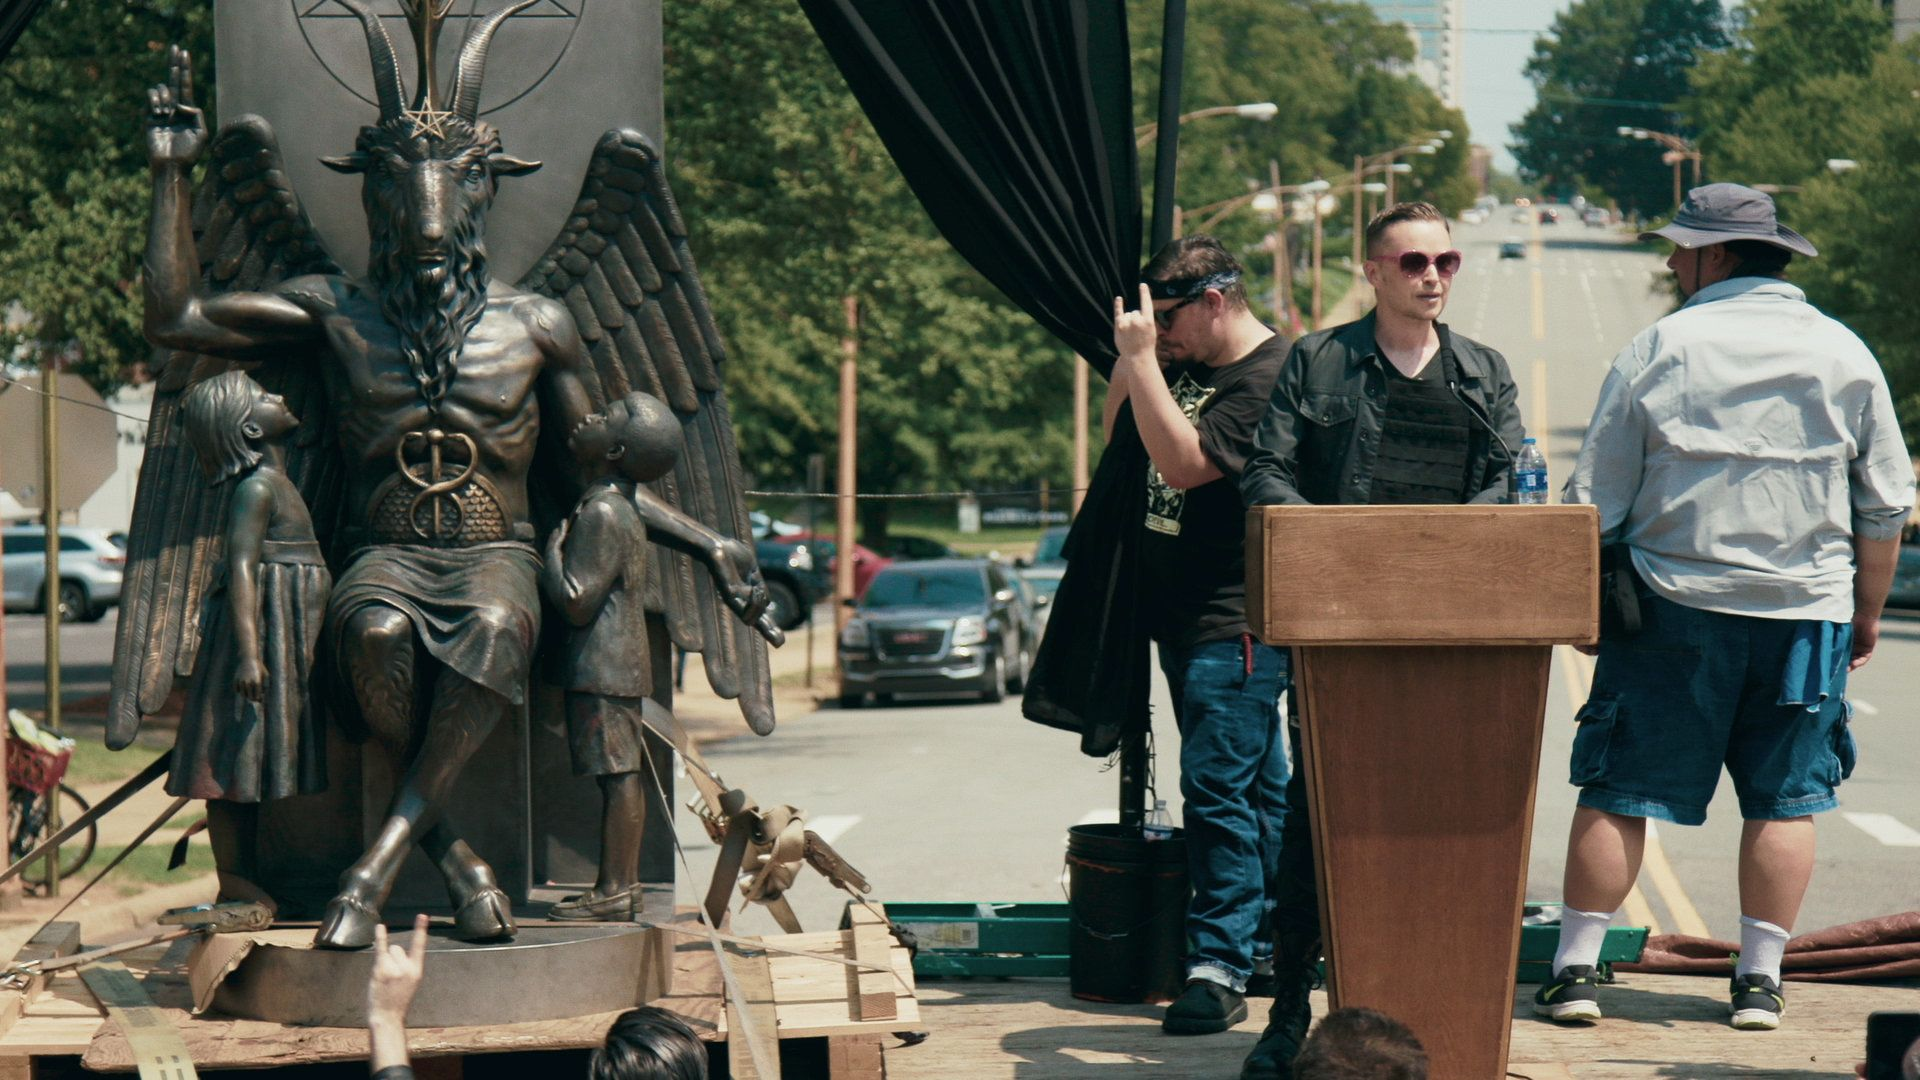 Satanic Temple co-founder Lucien Greaves delivers a speech in front of the Arkansas Capitol, with the group's Baphomet statue by his side.